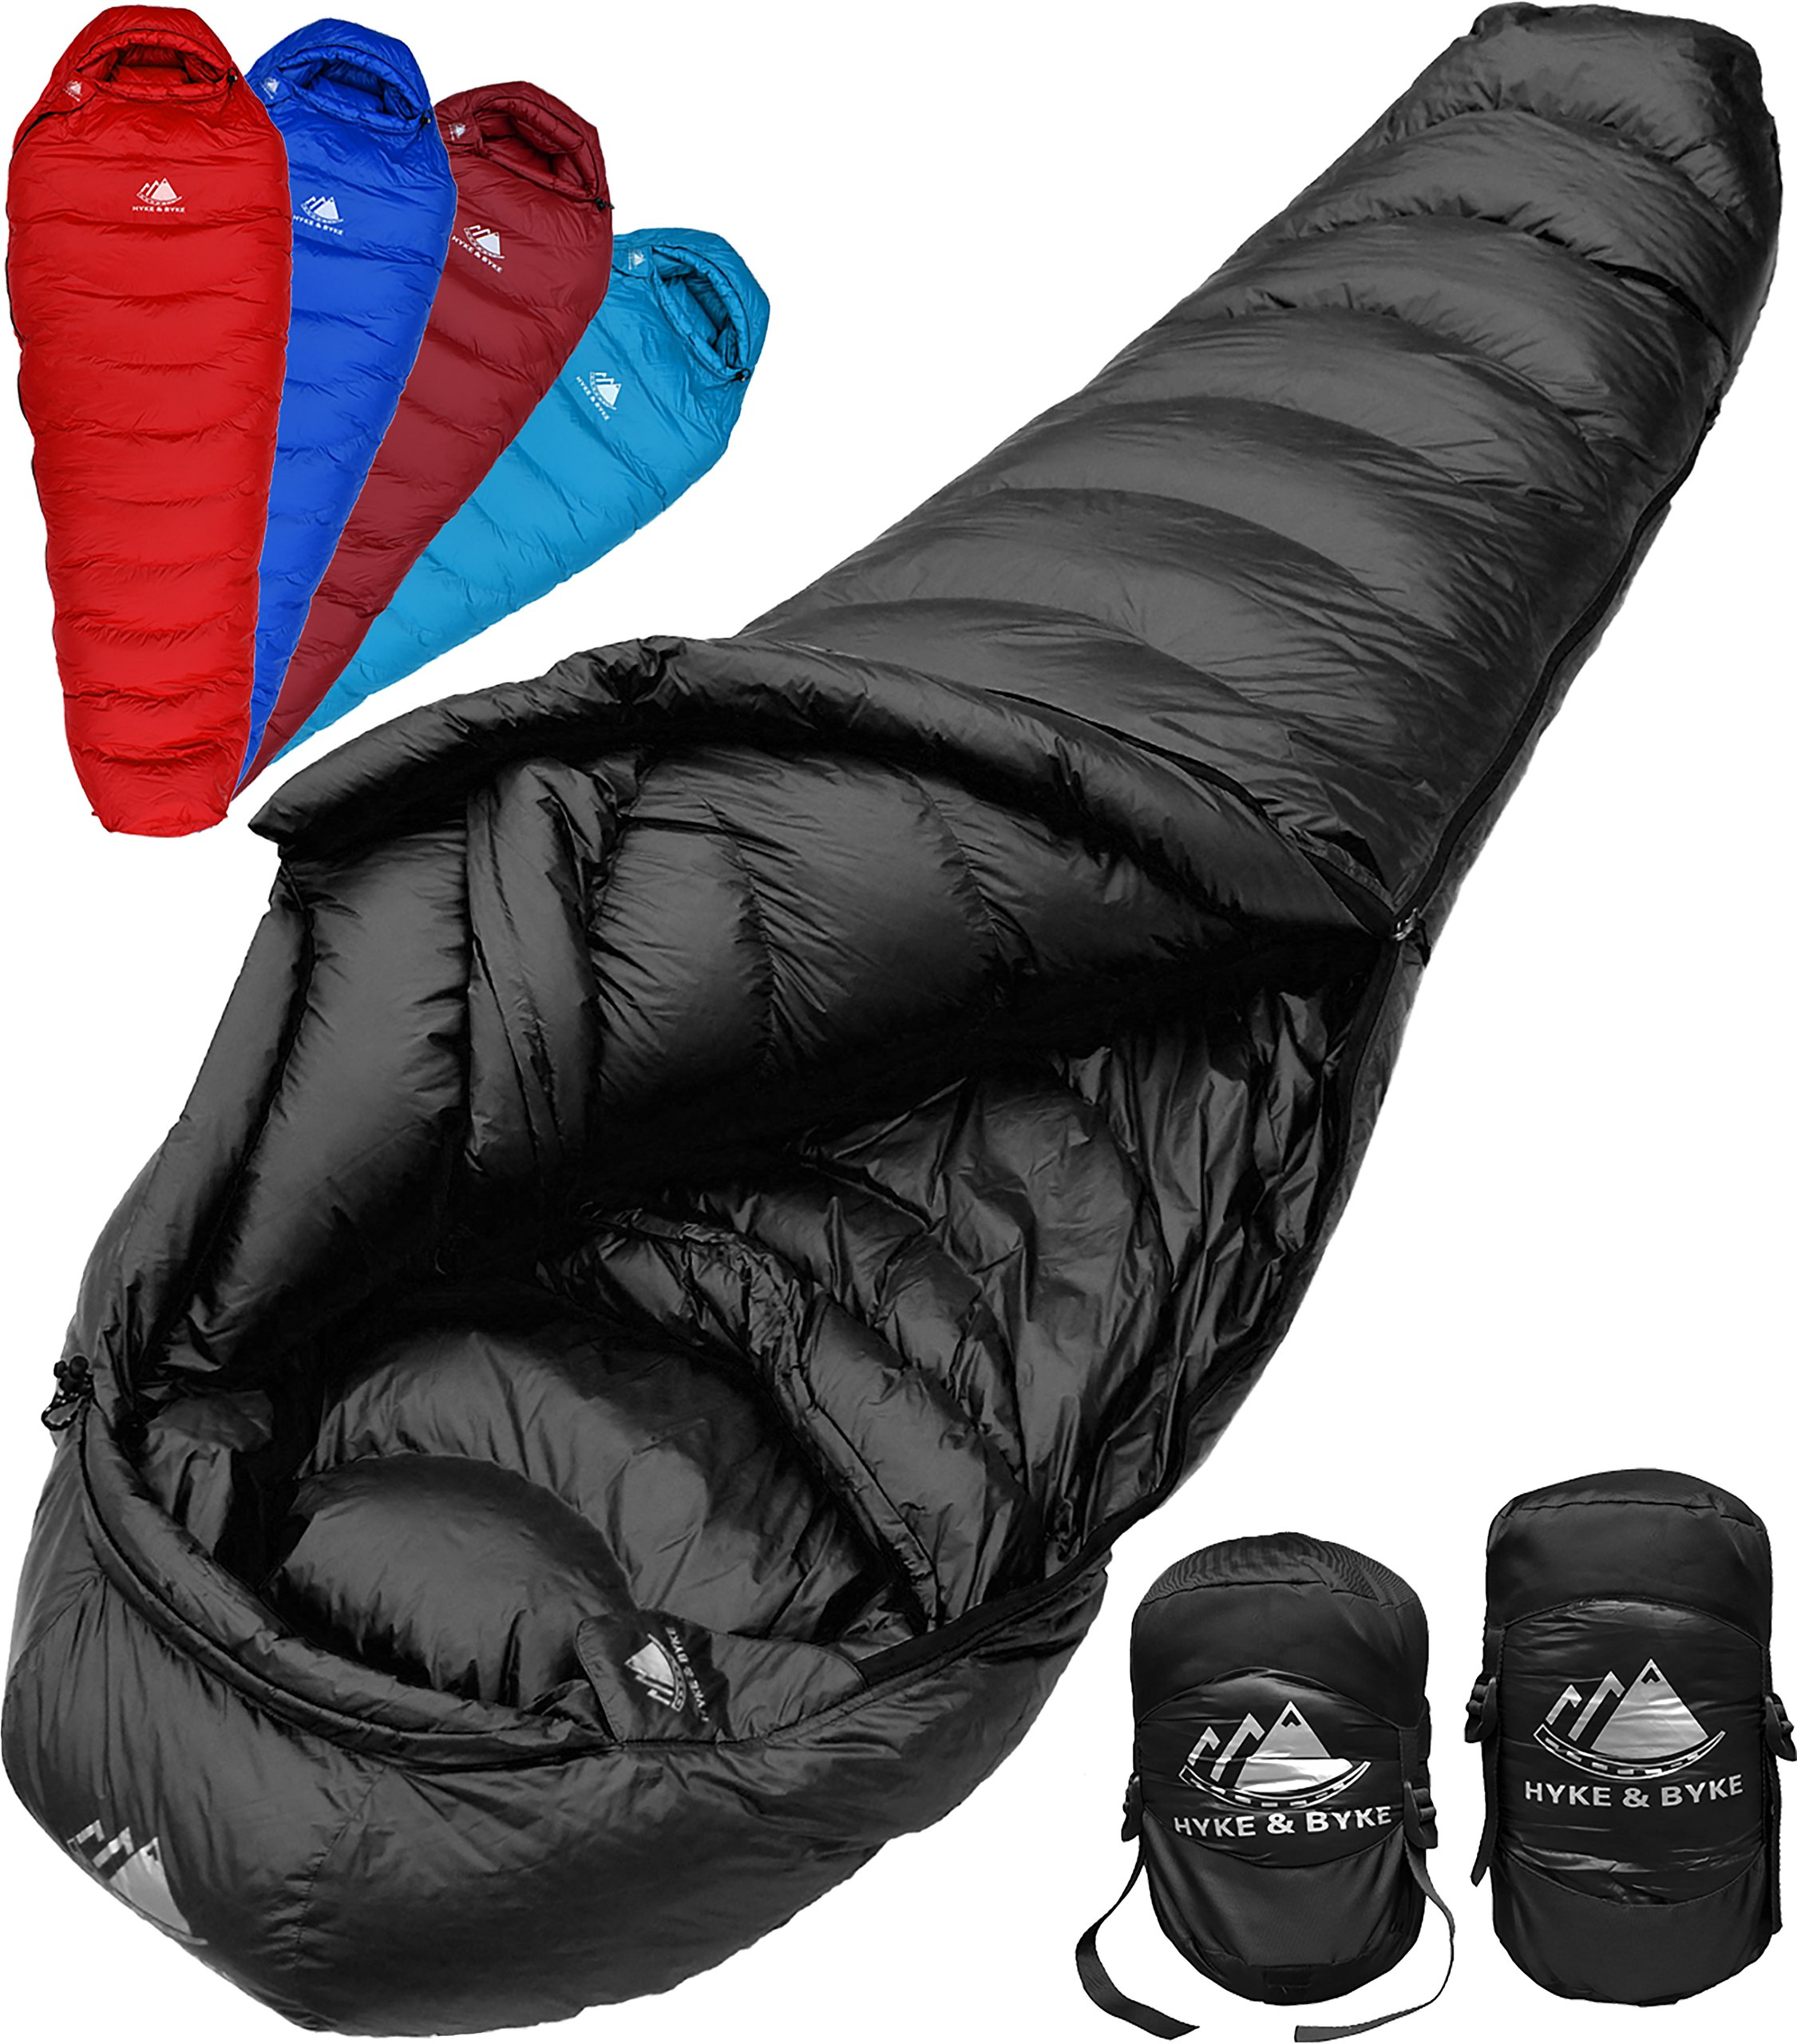 Hyke & Byke Quandary 15 Degree F 650 Fill Power Hydrophobic Down Sleeping Bag with ClusterLoft Base - Ultra Lightweight 3 Season Men's and Women's Mummy Bag Designed for Backpacking by Hyke & Byke